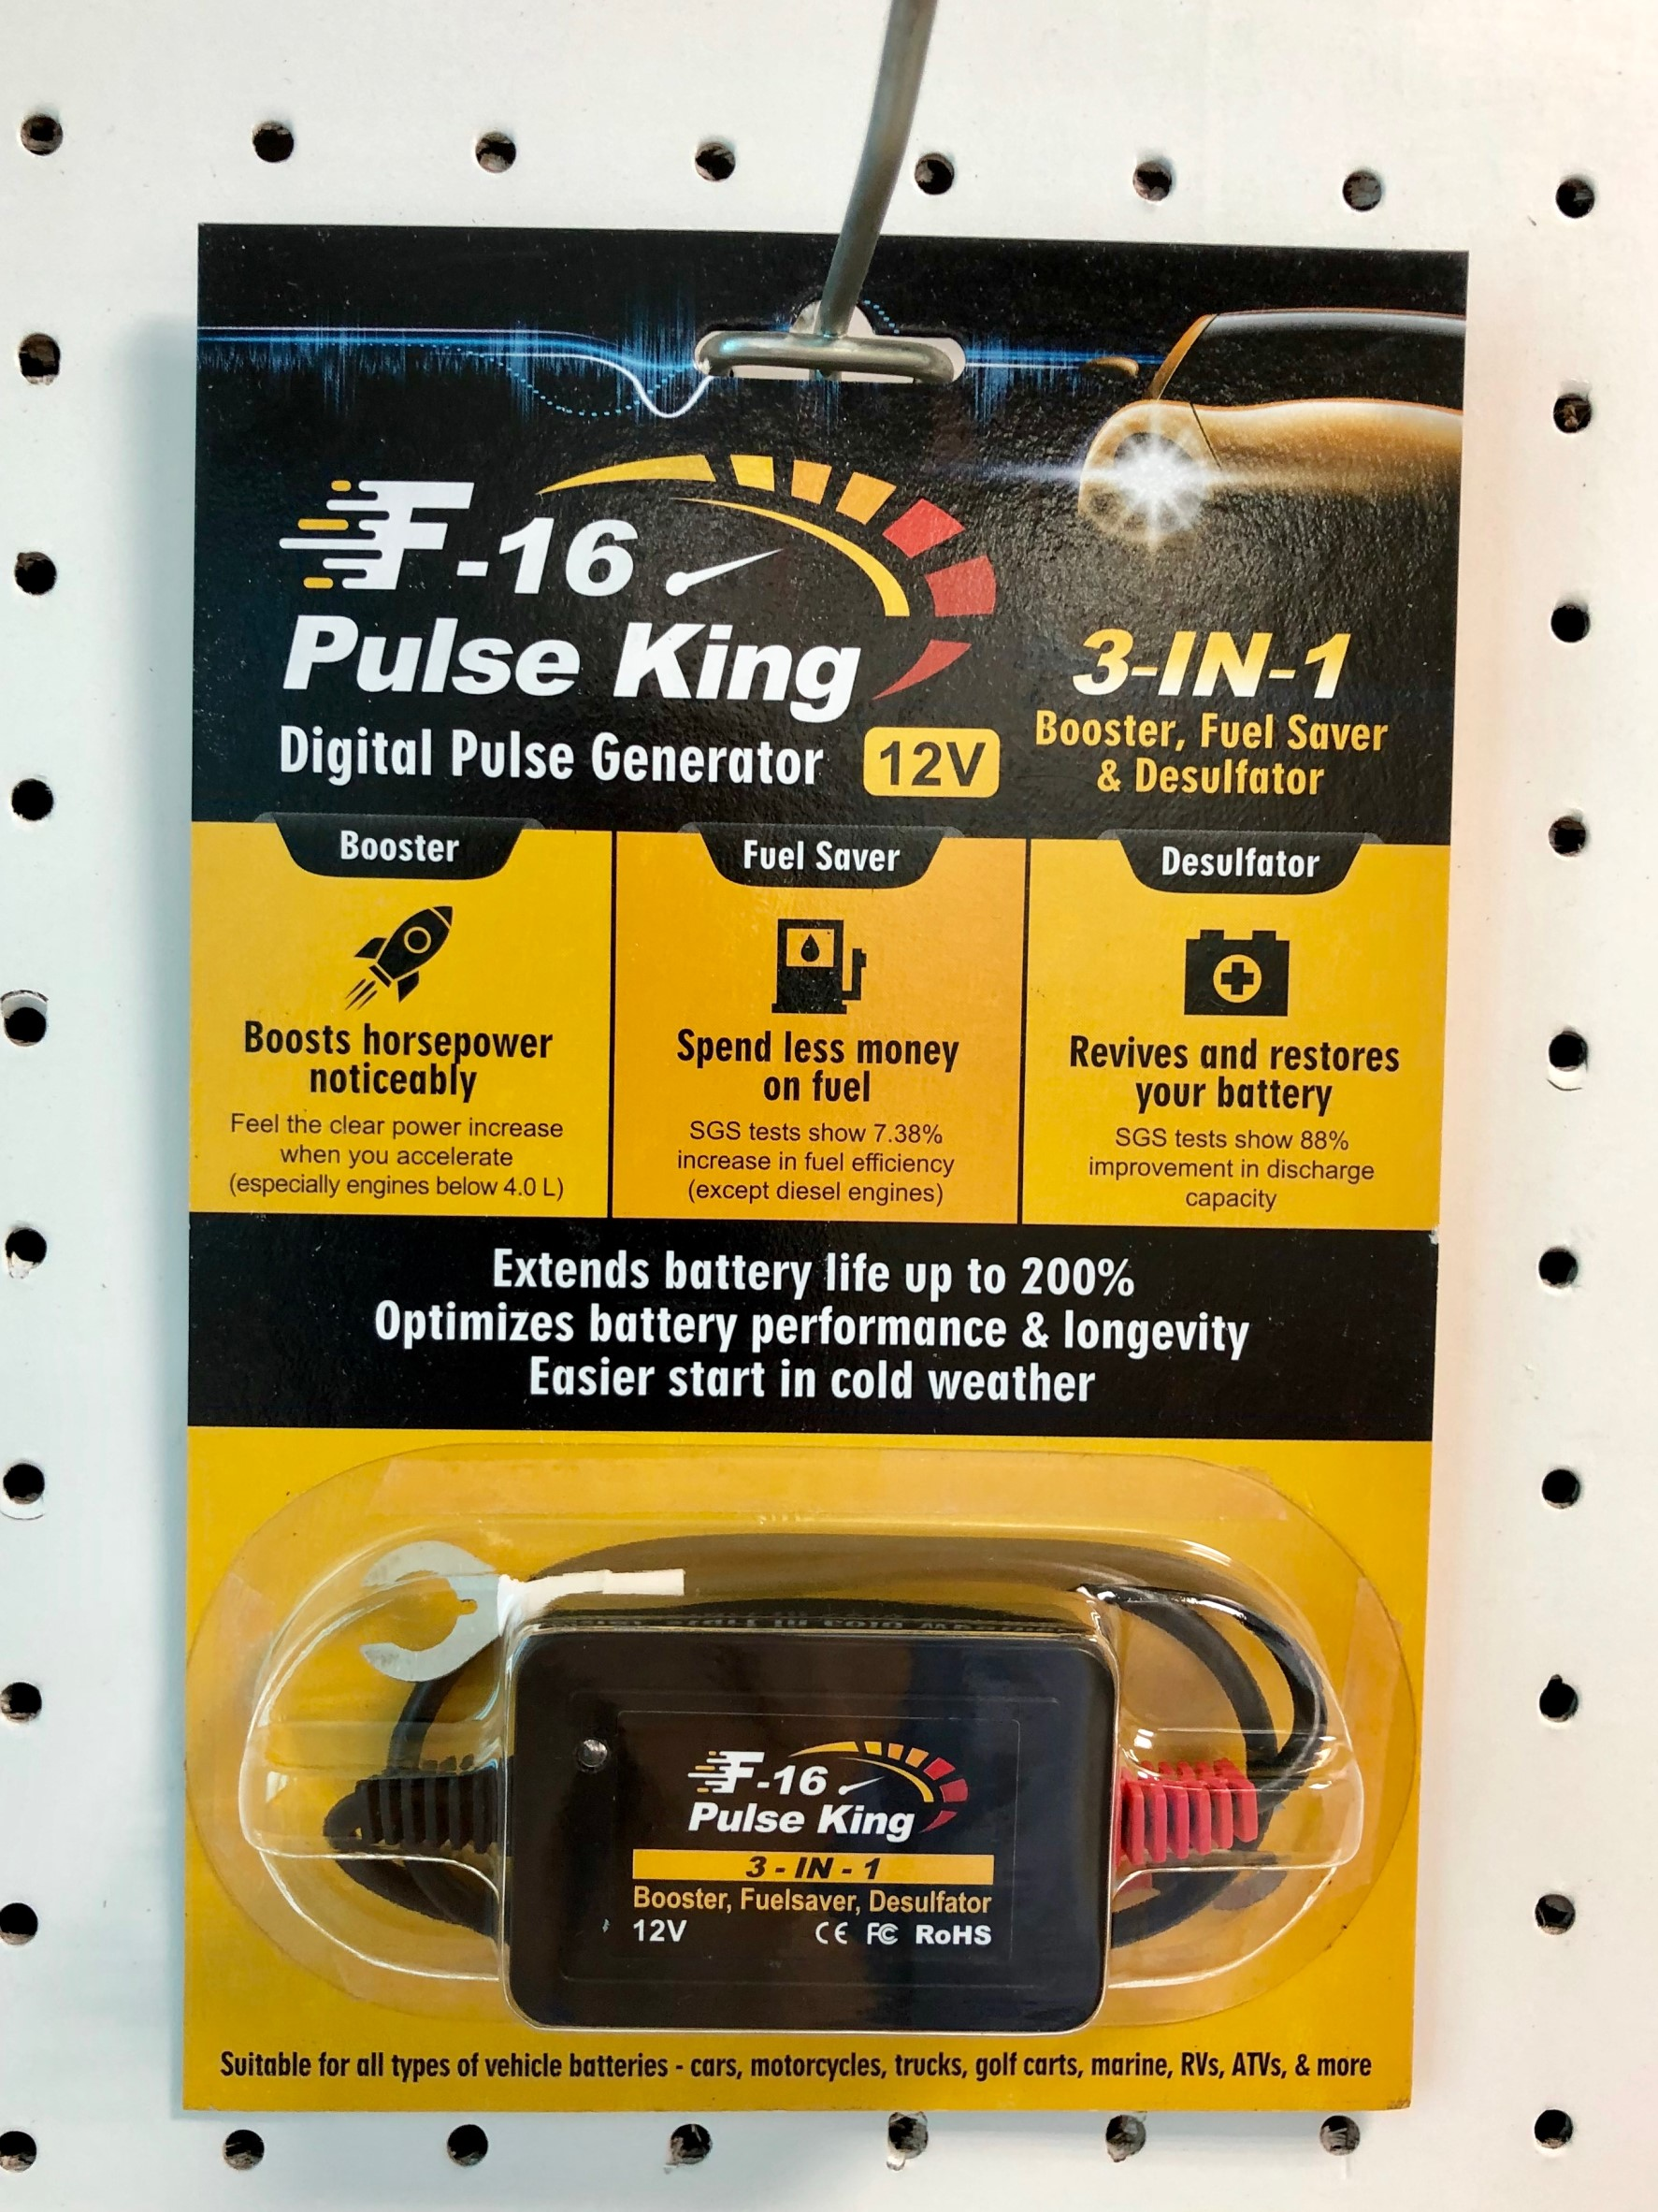 Pulse King Battery Life Extender